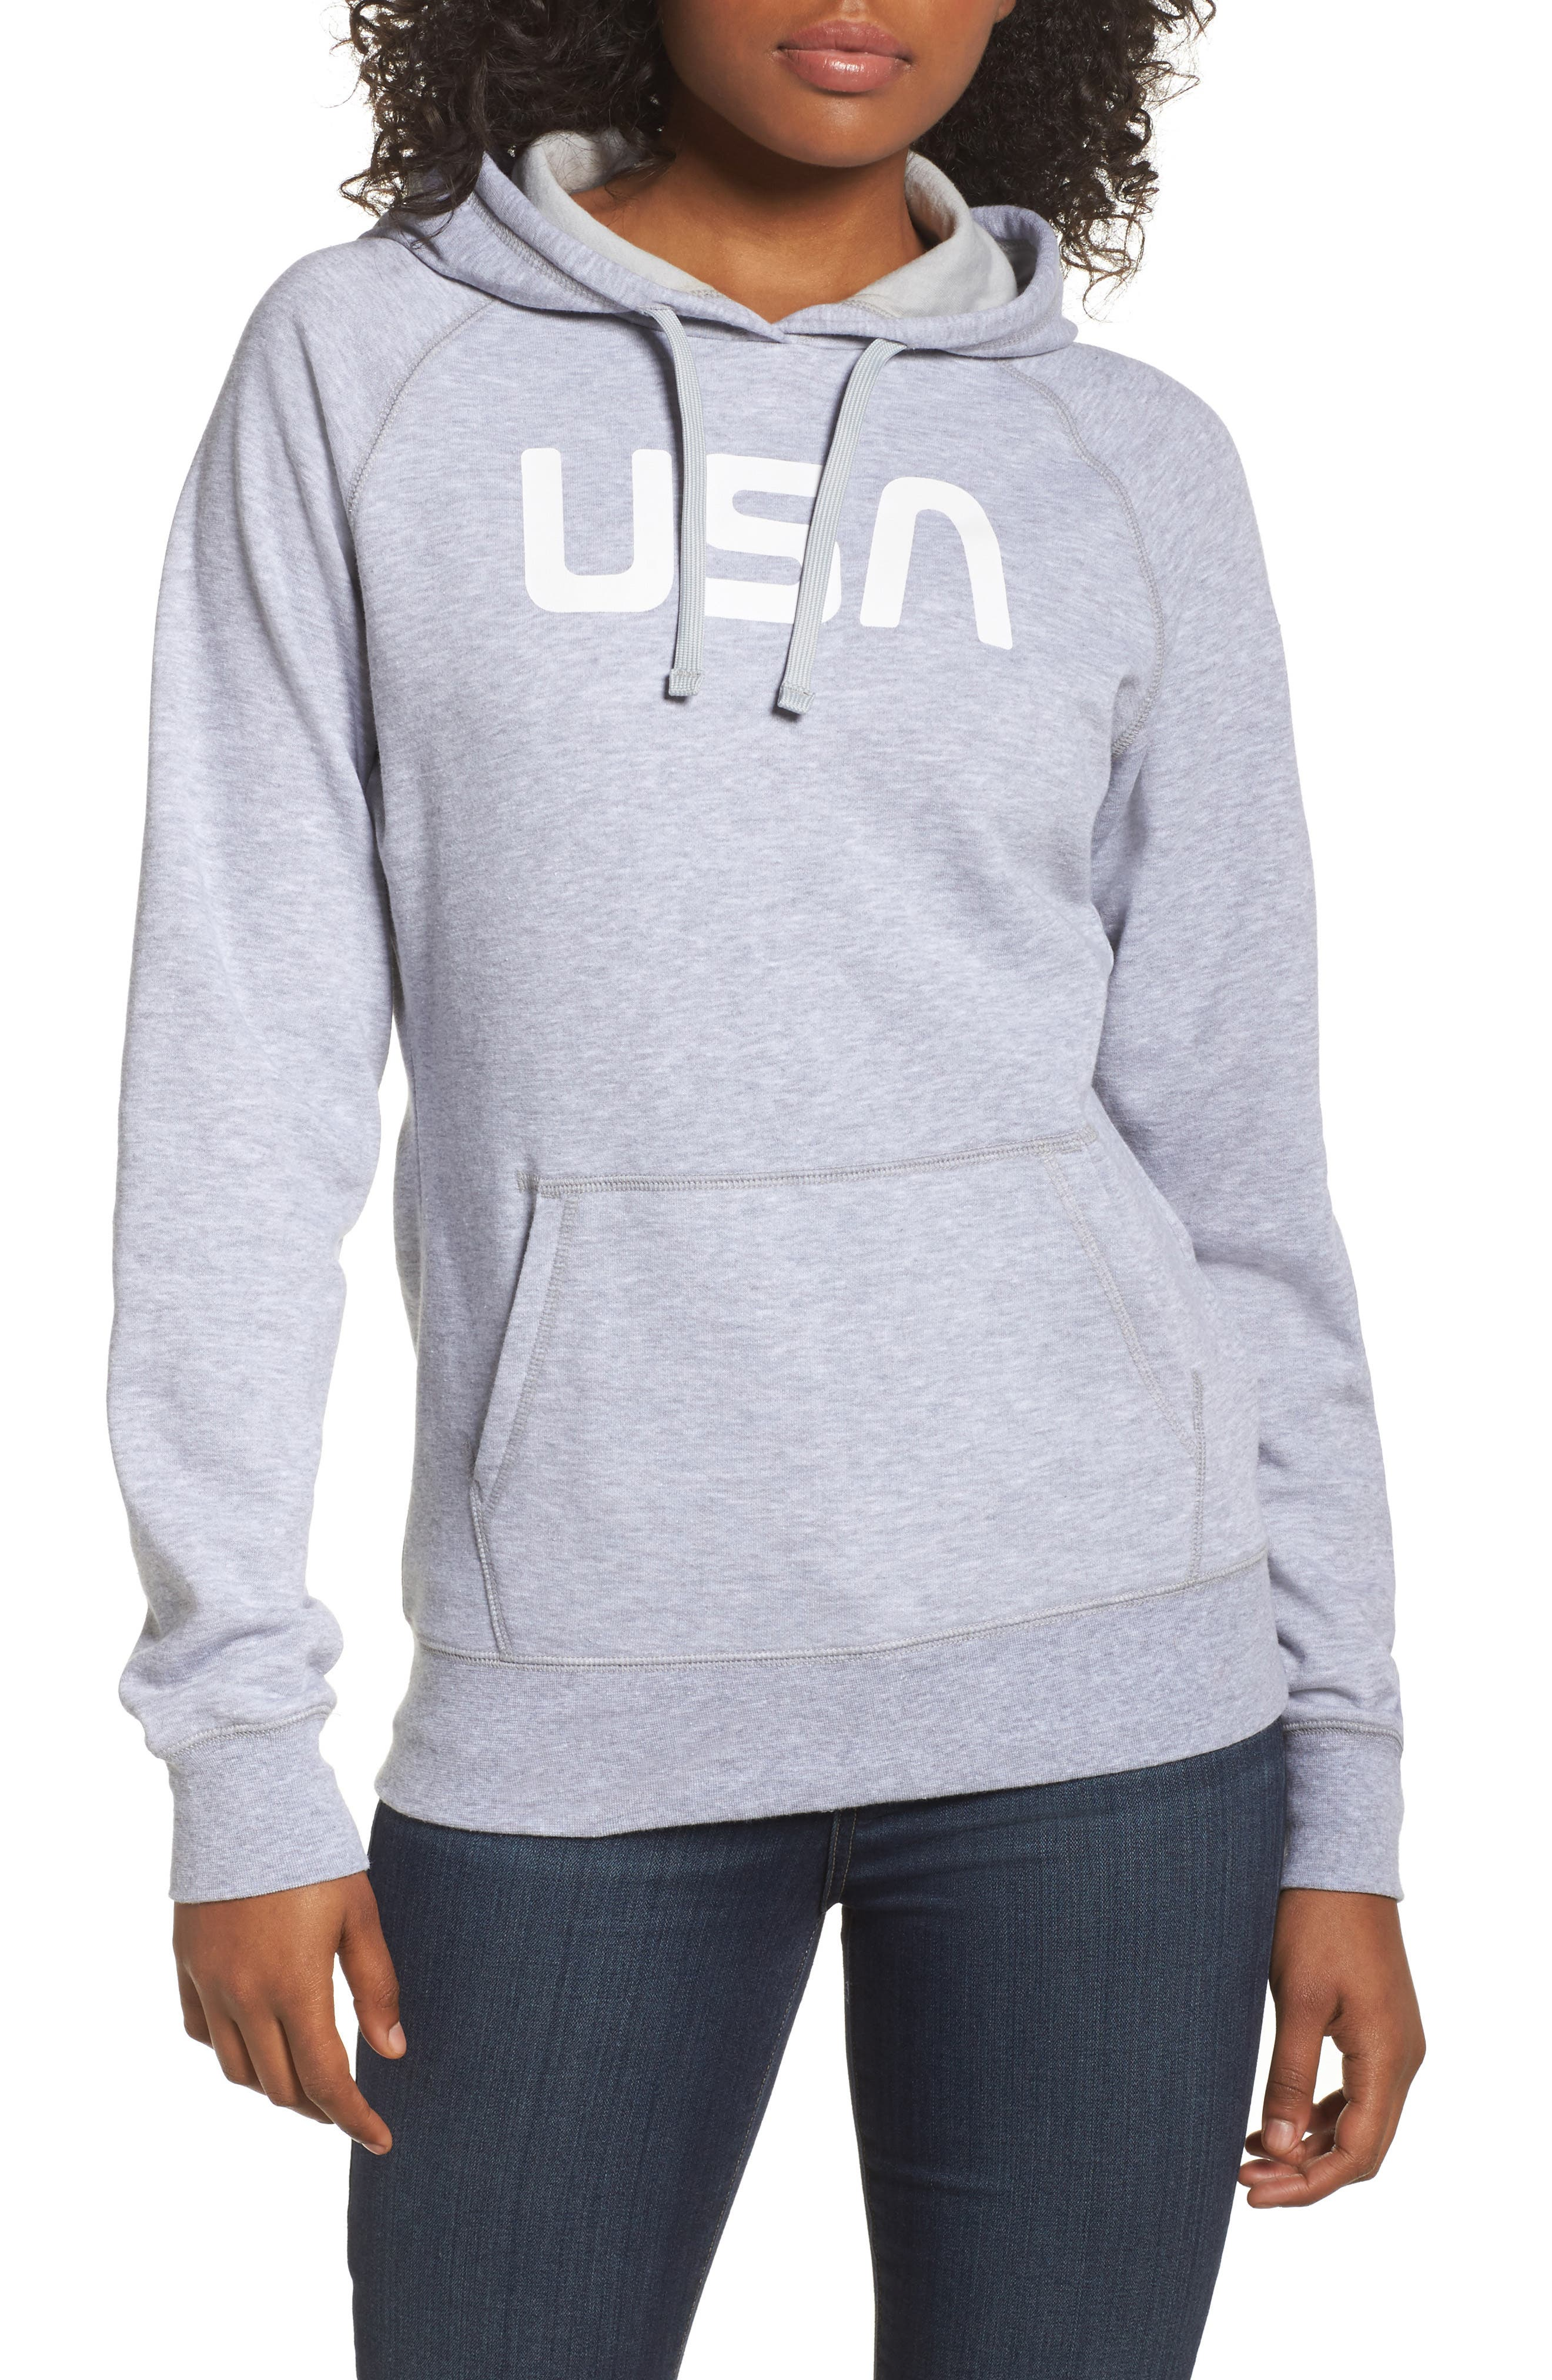 International Collection USA Pullover Hoodie,                         Main,                         color, Tnf Light Grey Heather